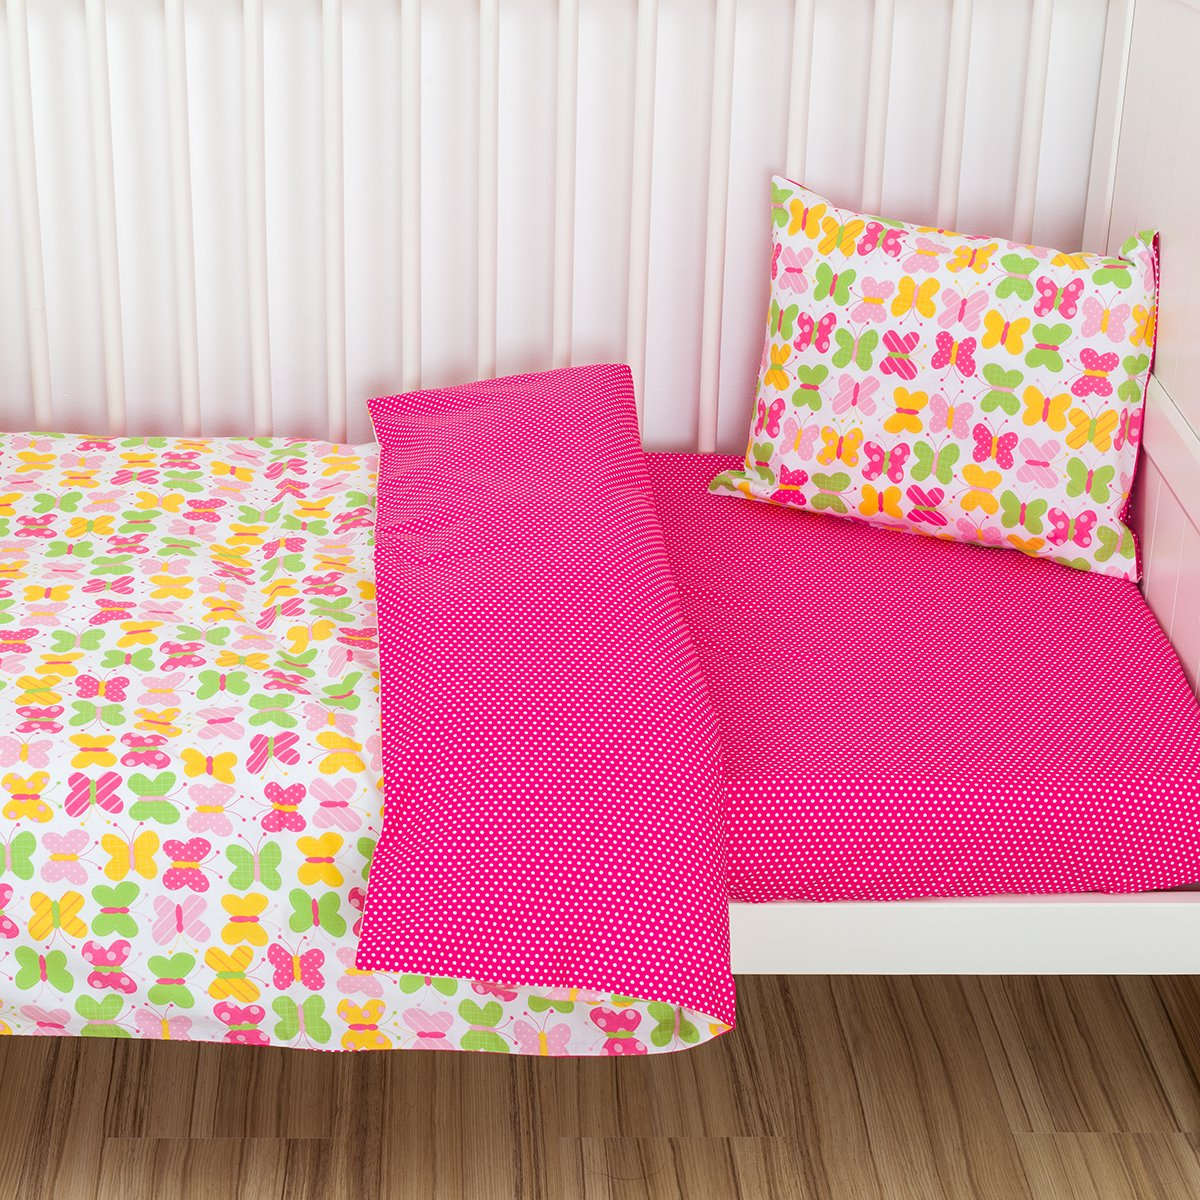 Toddler Duvet Cover and Pillowcase Bedding Set 100% cotton 90*135 cm Girls Pink mayabee